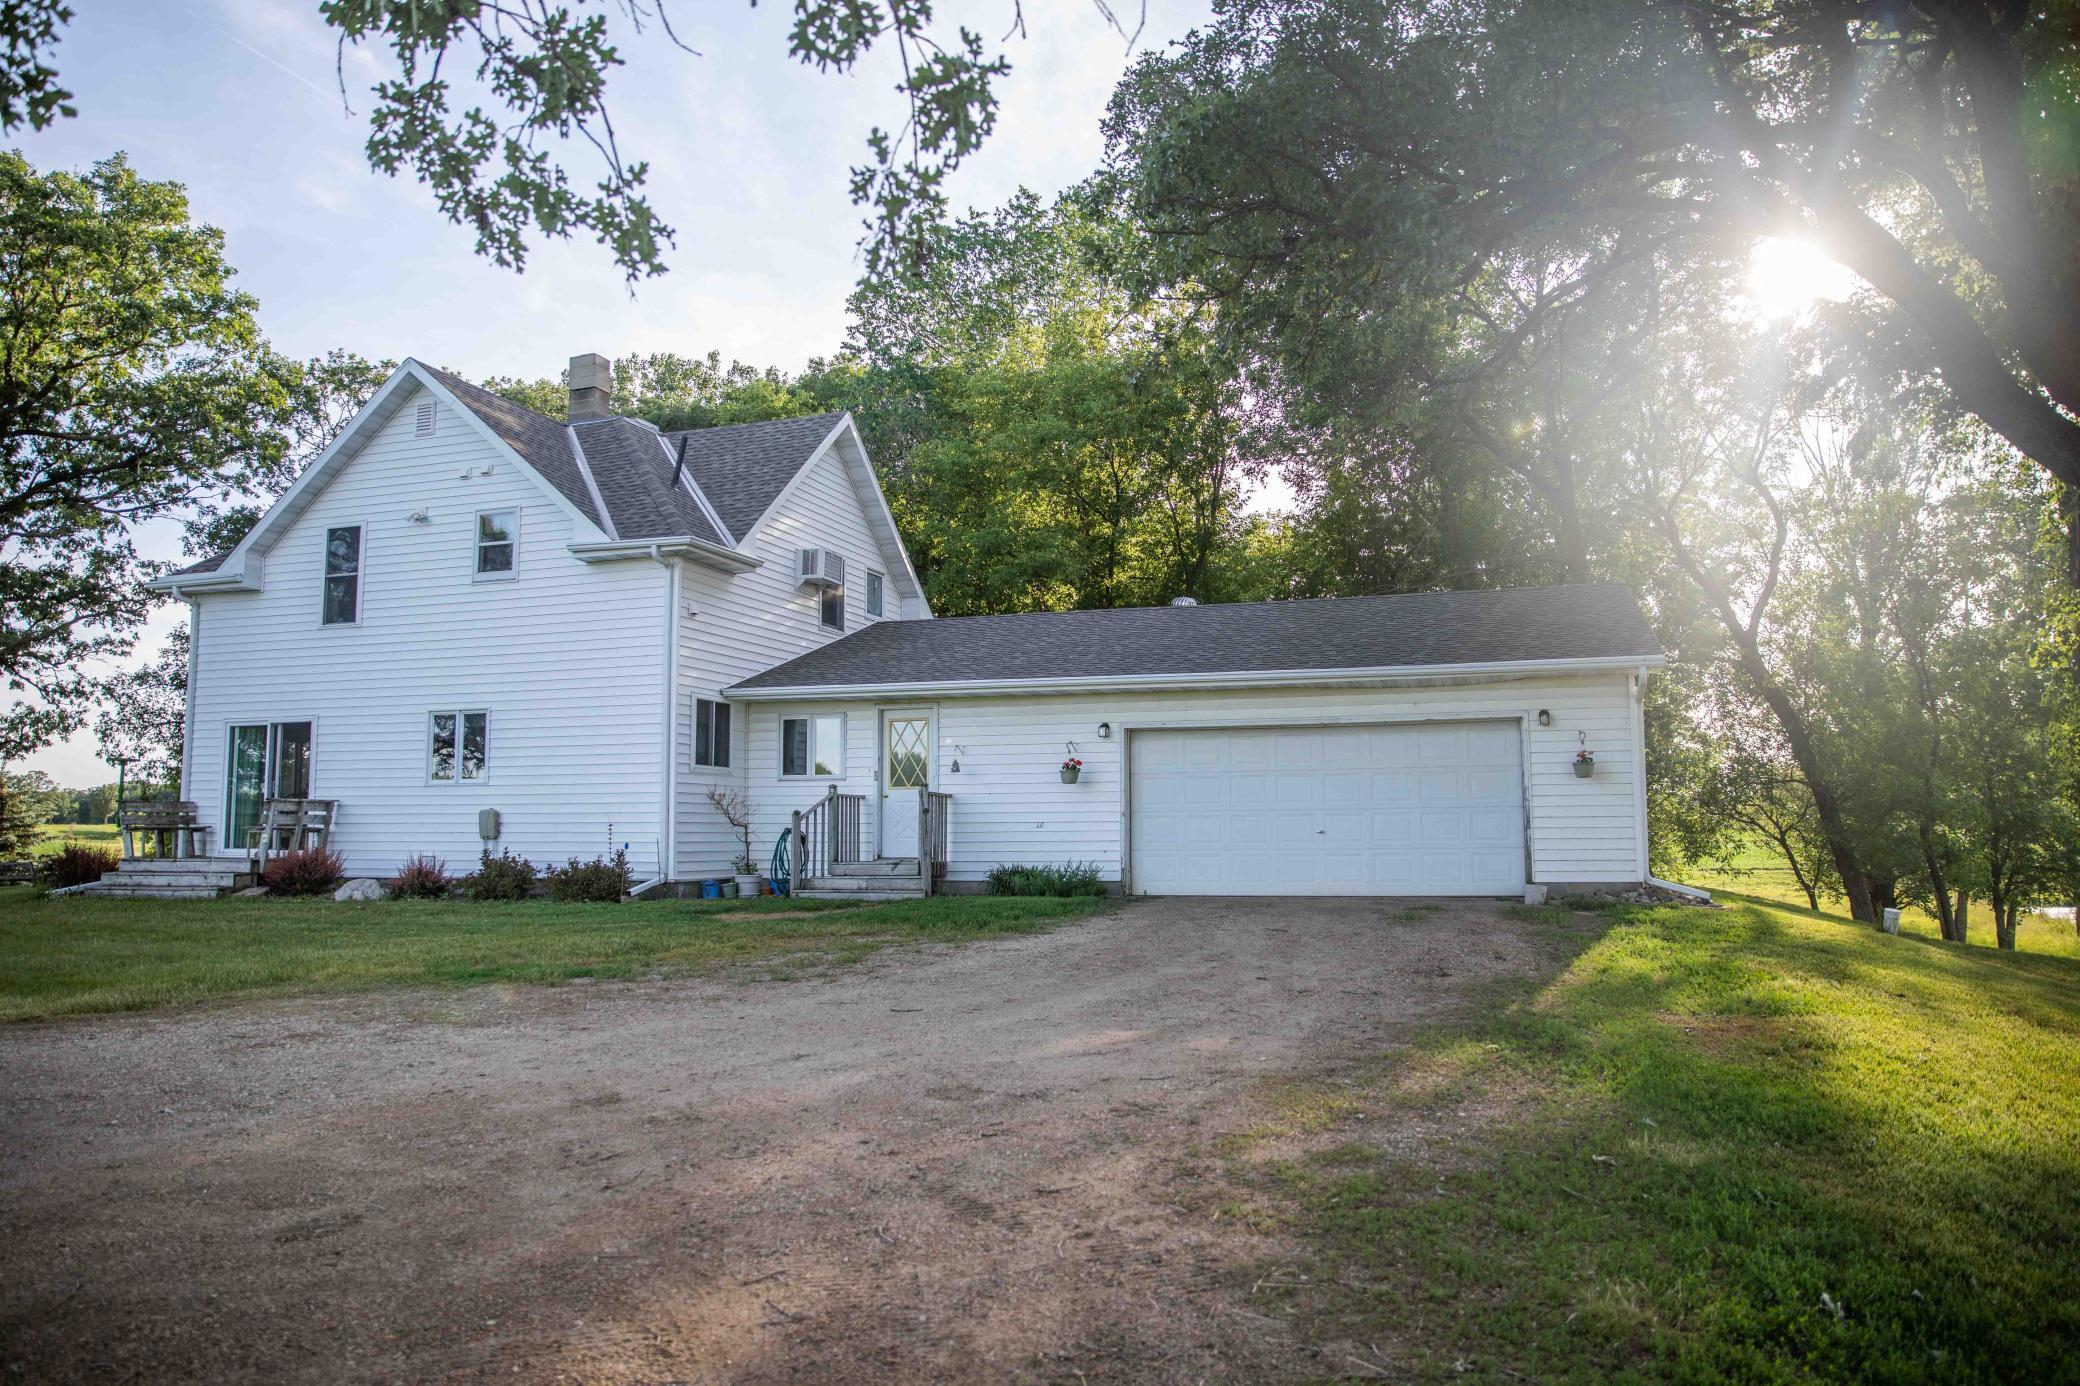 6253 81st NW Property Photo - Garfield, MN real estate listing